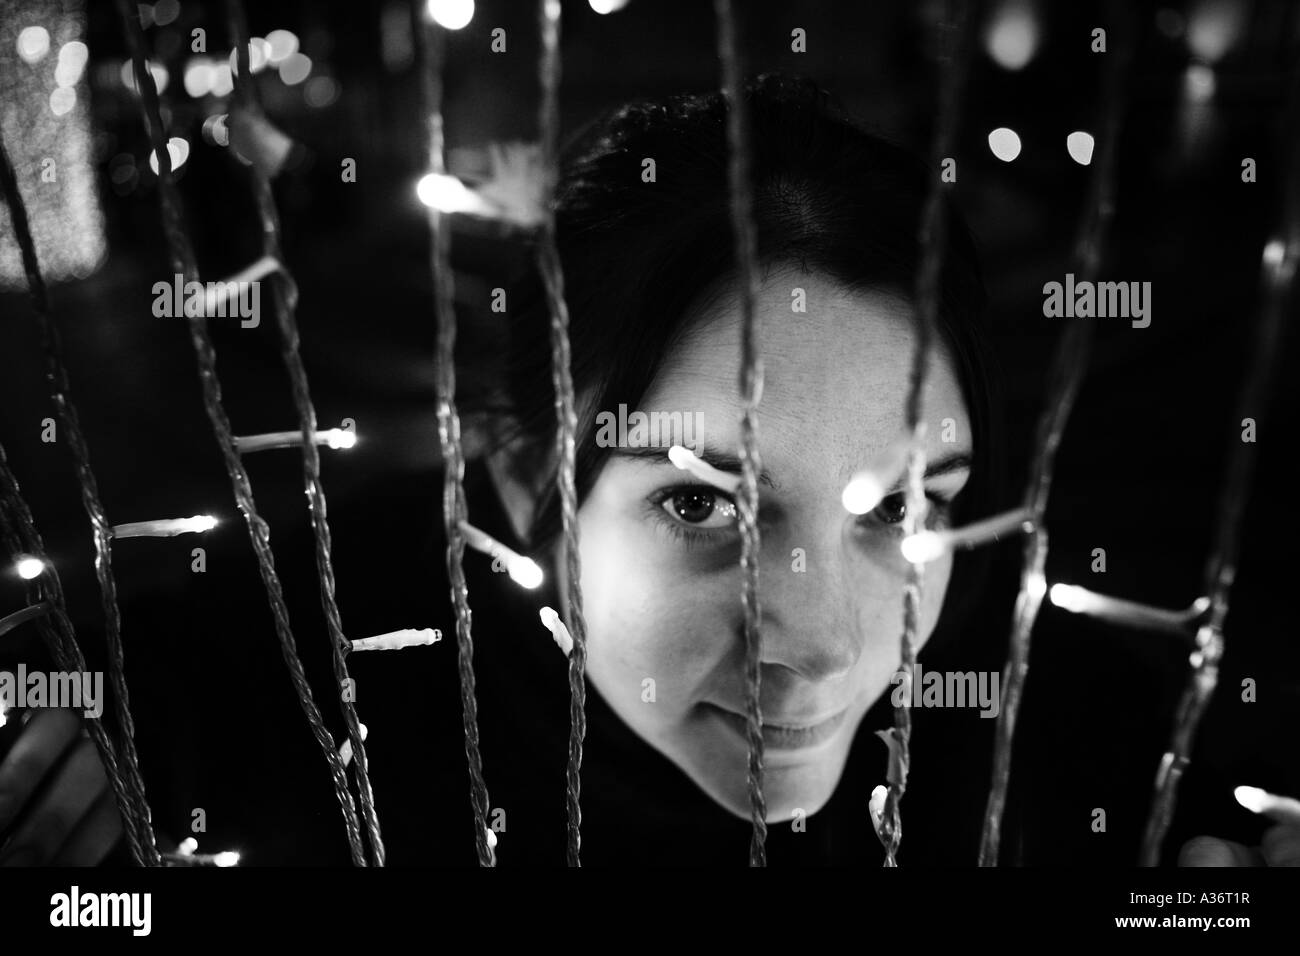 a lady looking though hanging christmas lights in lisbon portugal stock image